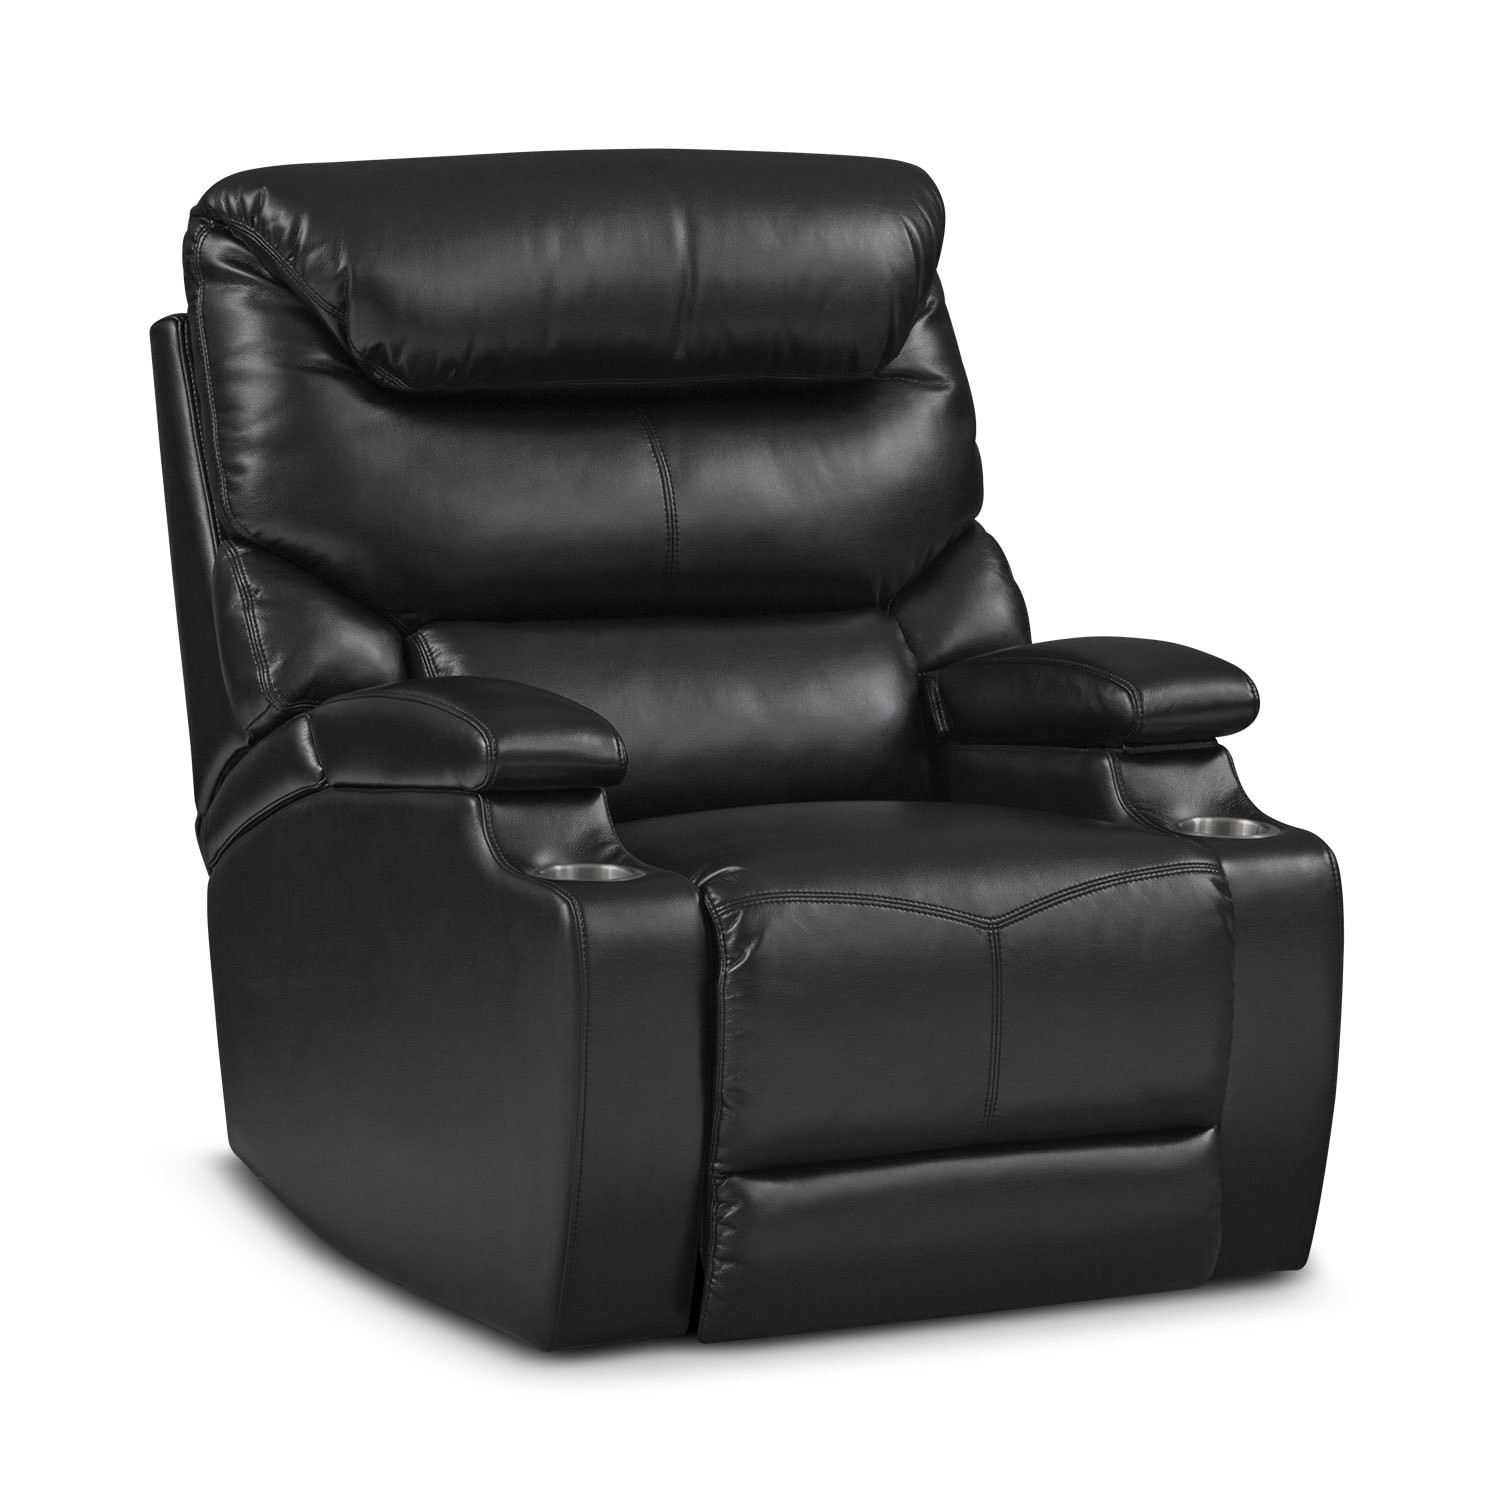 [Jupiter Black Power Recliner]